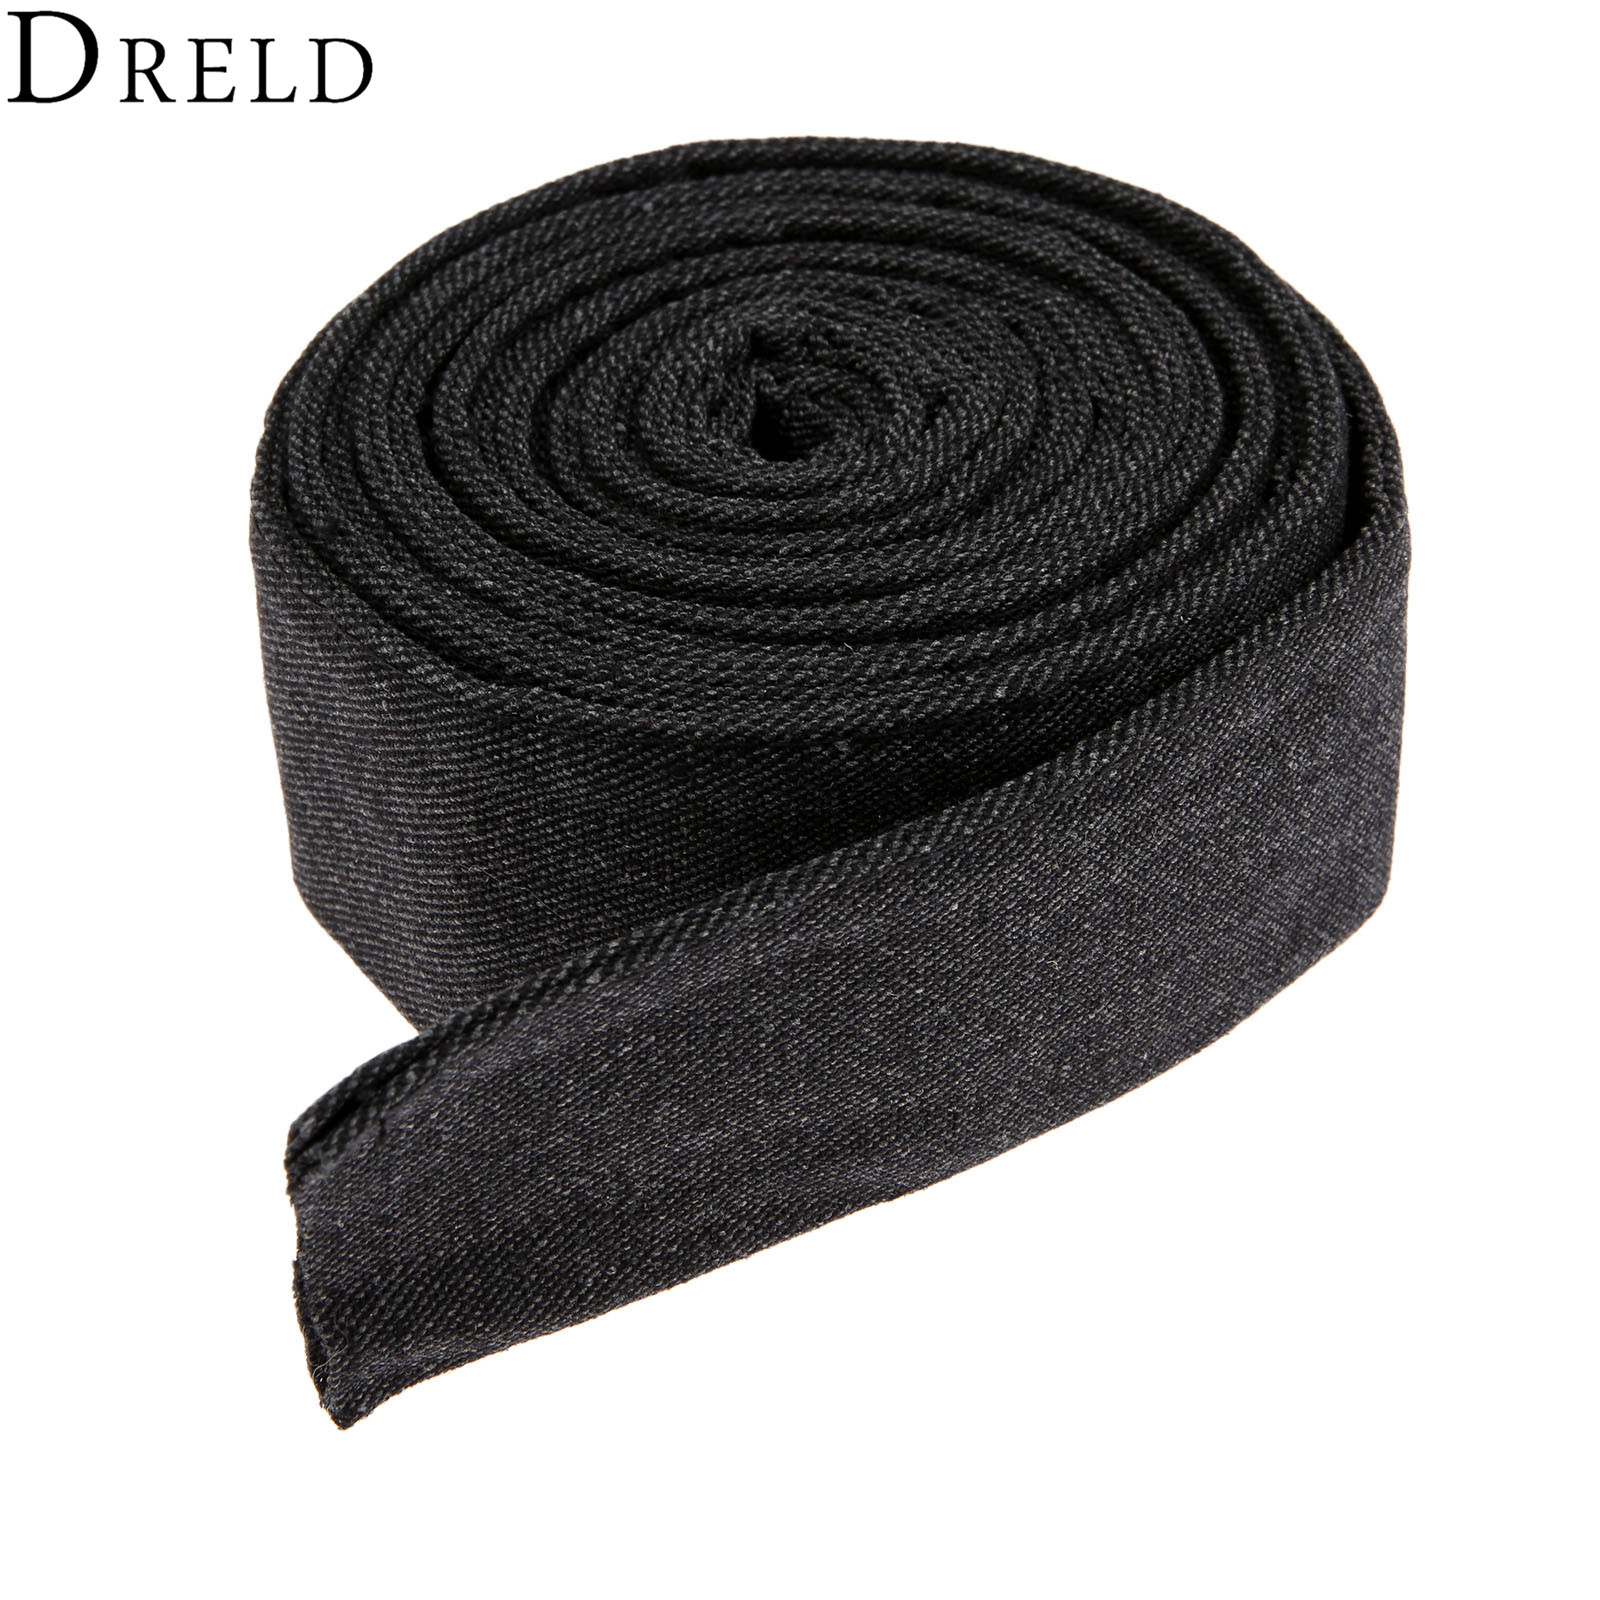 DRELD TIG Welding Torch Power Cable Cover Cowboy Jacket 4 Meter & 11-1/8 Feet Fit For TIG Welding Plasma Cutter Torch 45mm Width